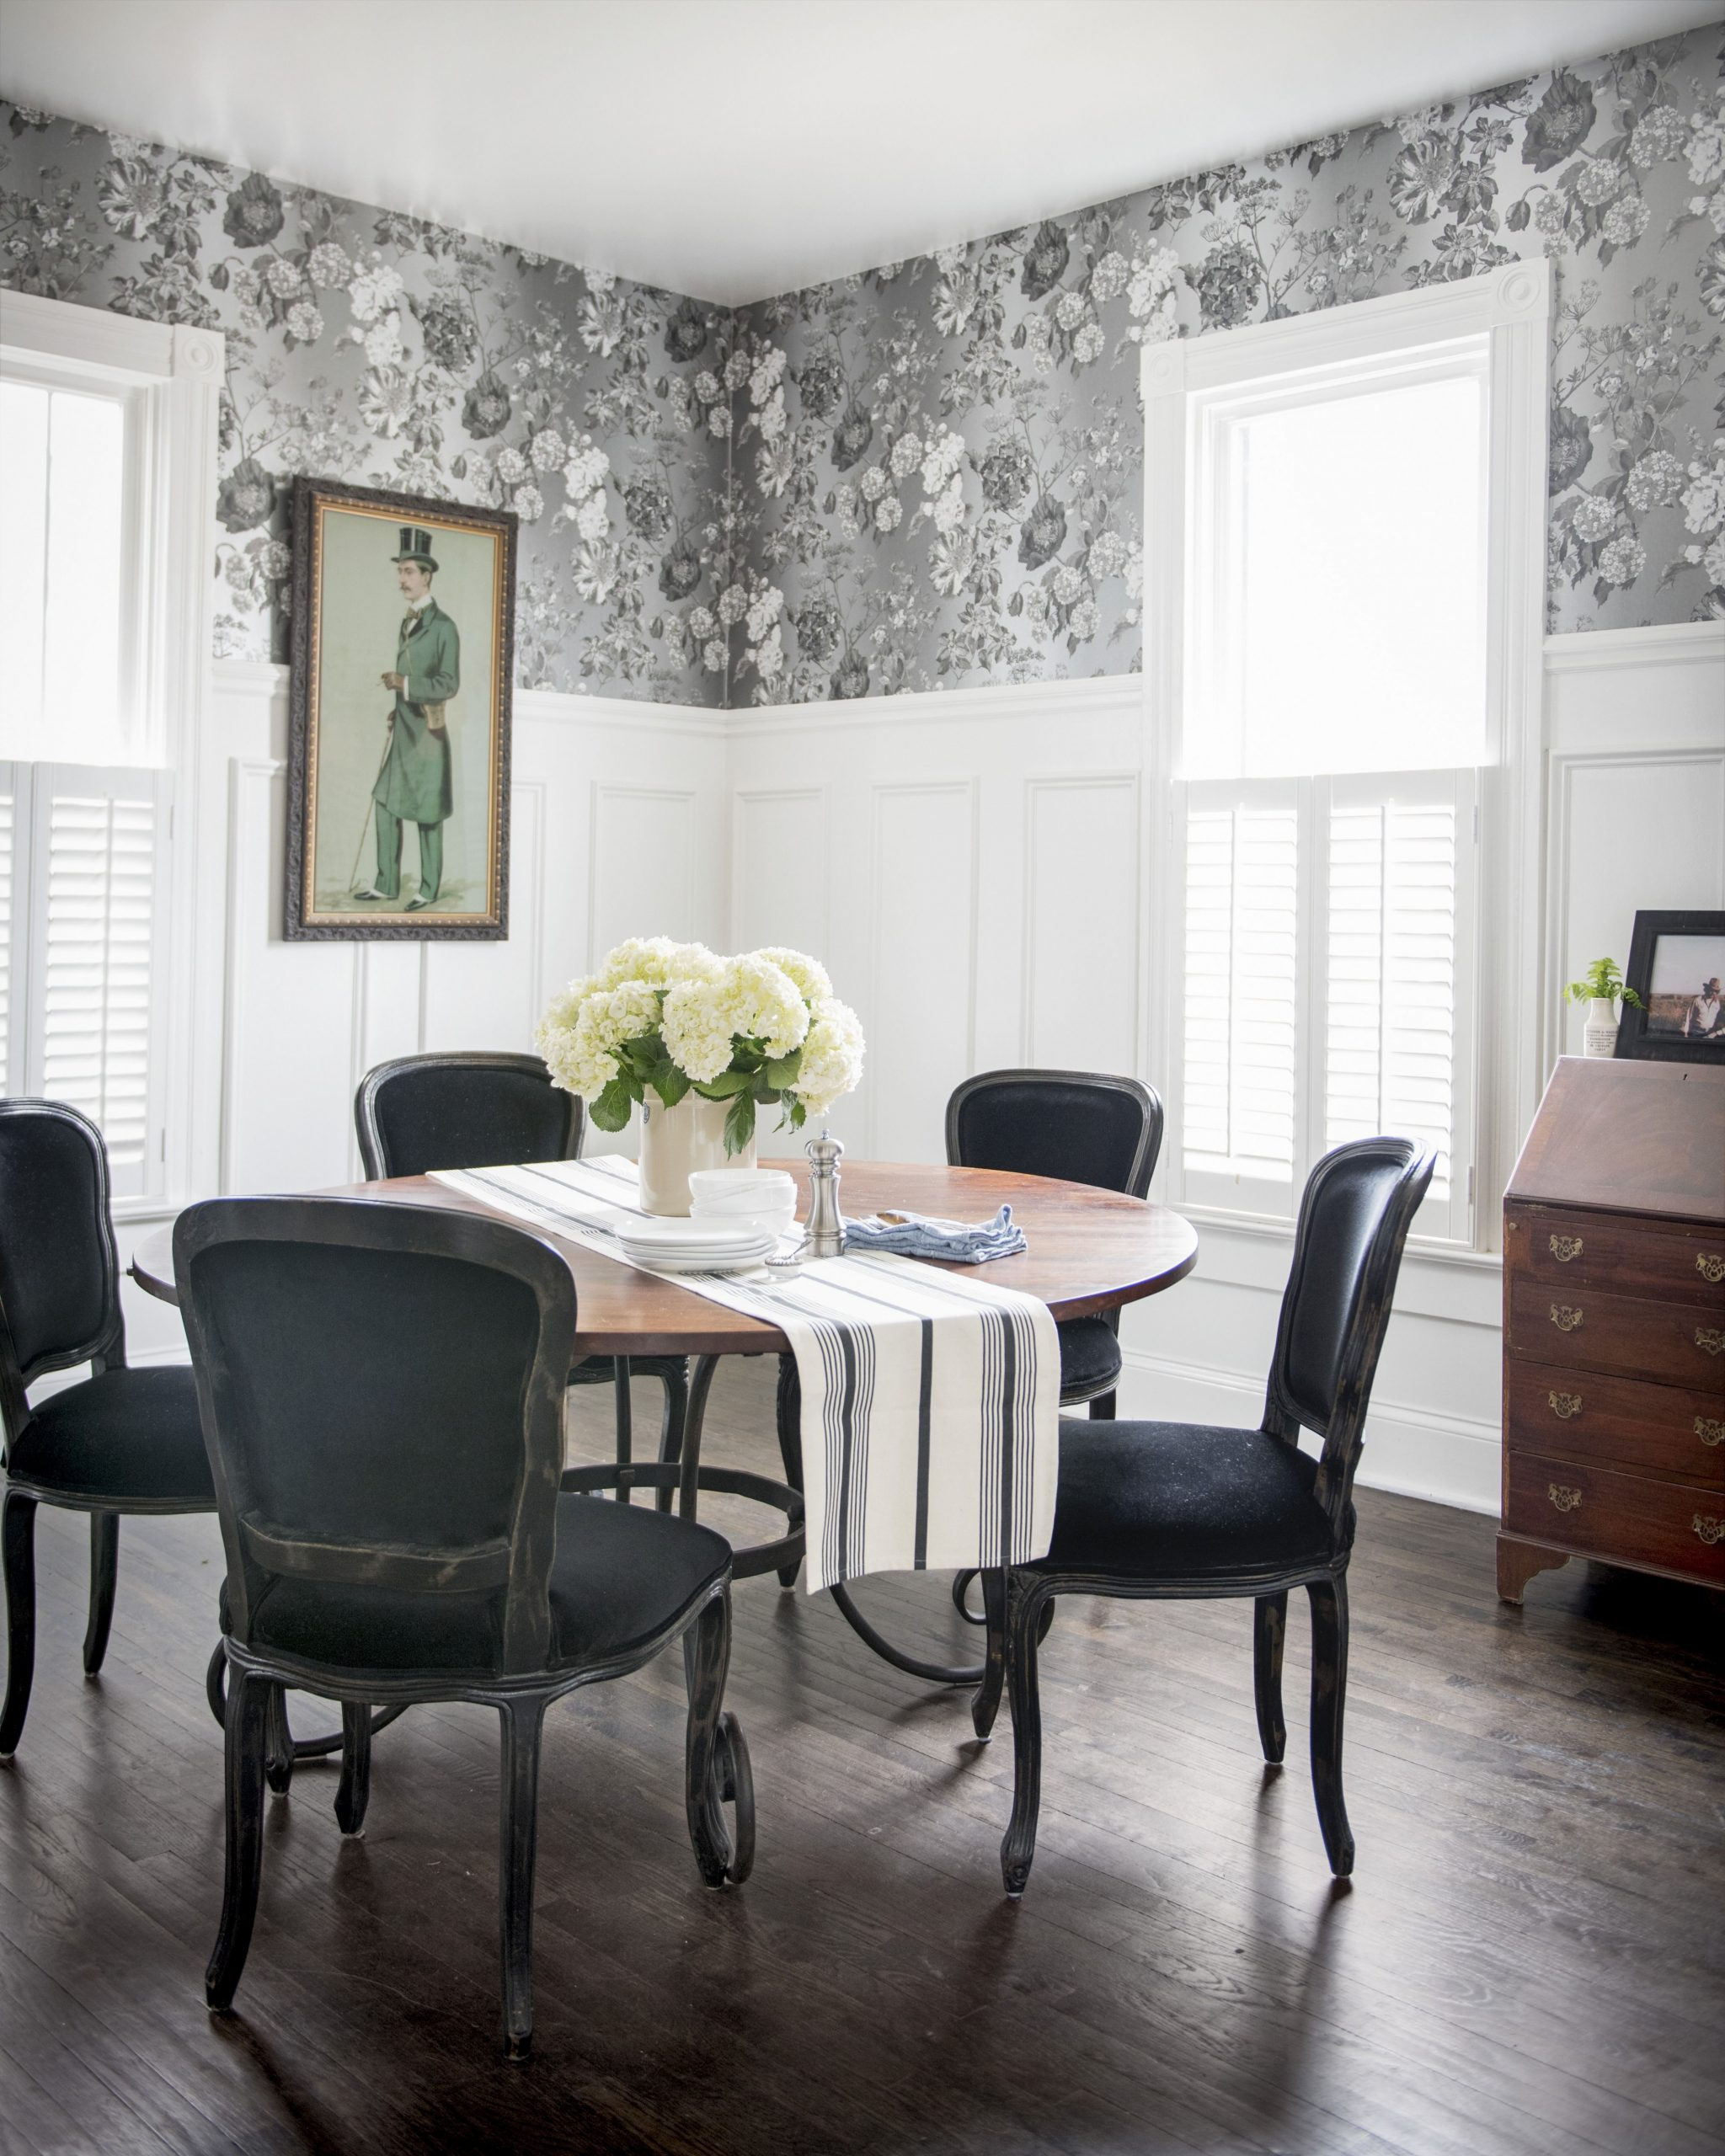 12 Best Dining Room Decorating Ideas - Pictures of Dining Room Decor - Dining Room Theme Ideas